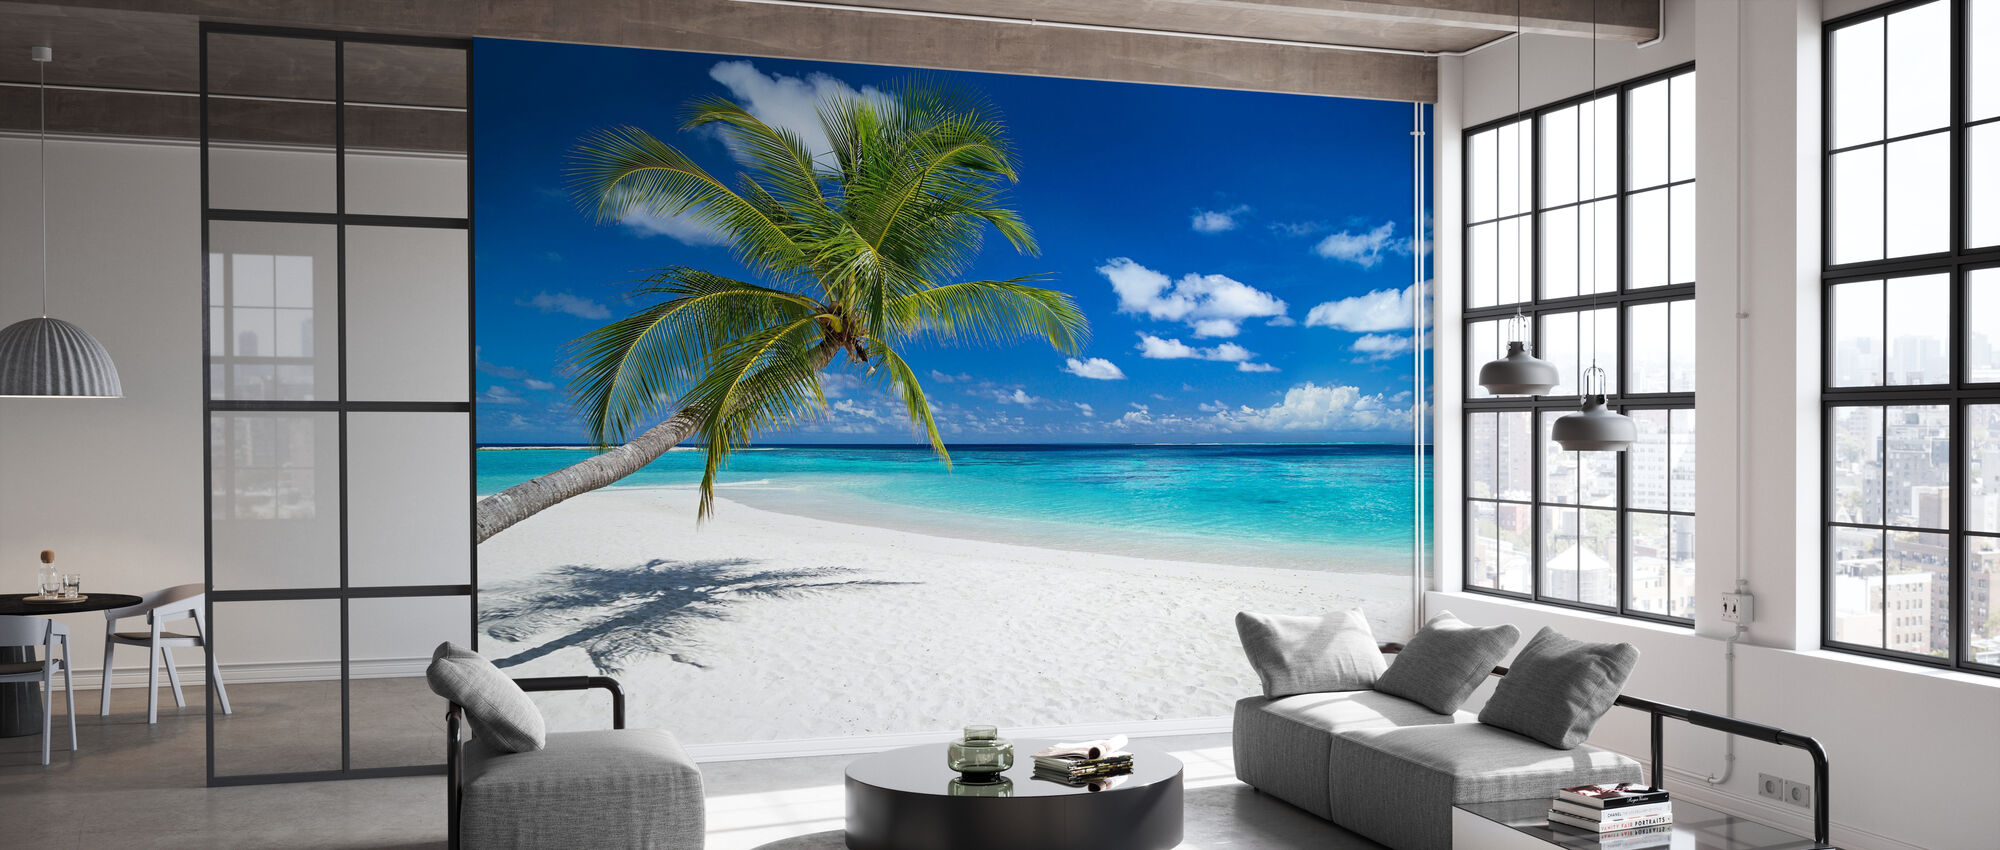 Tropical Beach - Wallpaper - Office